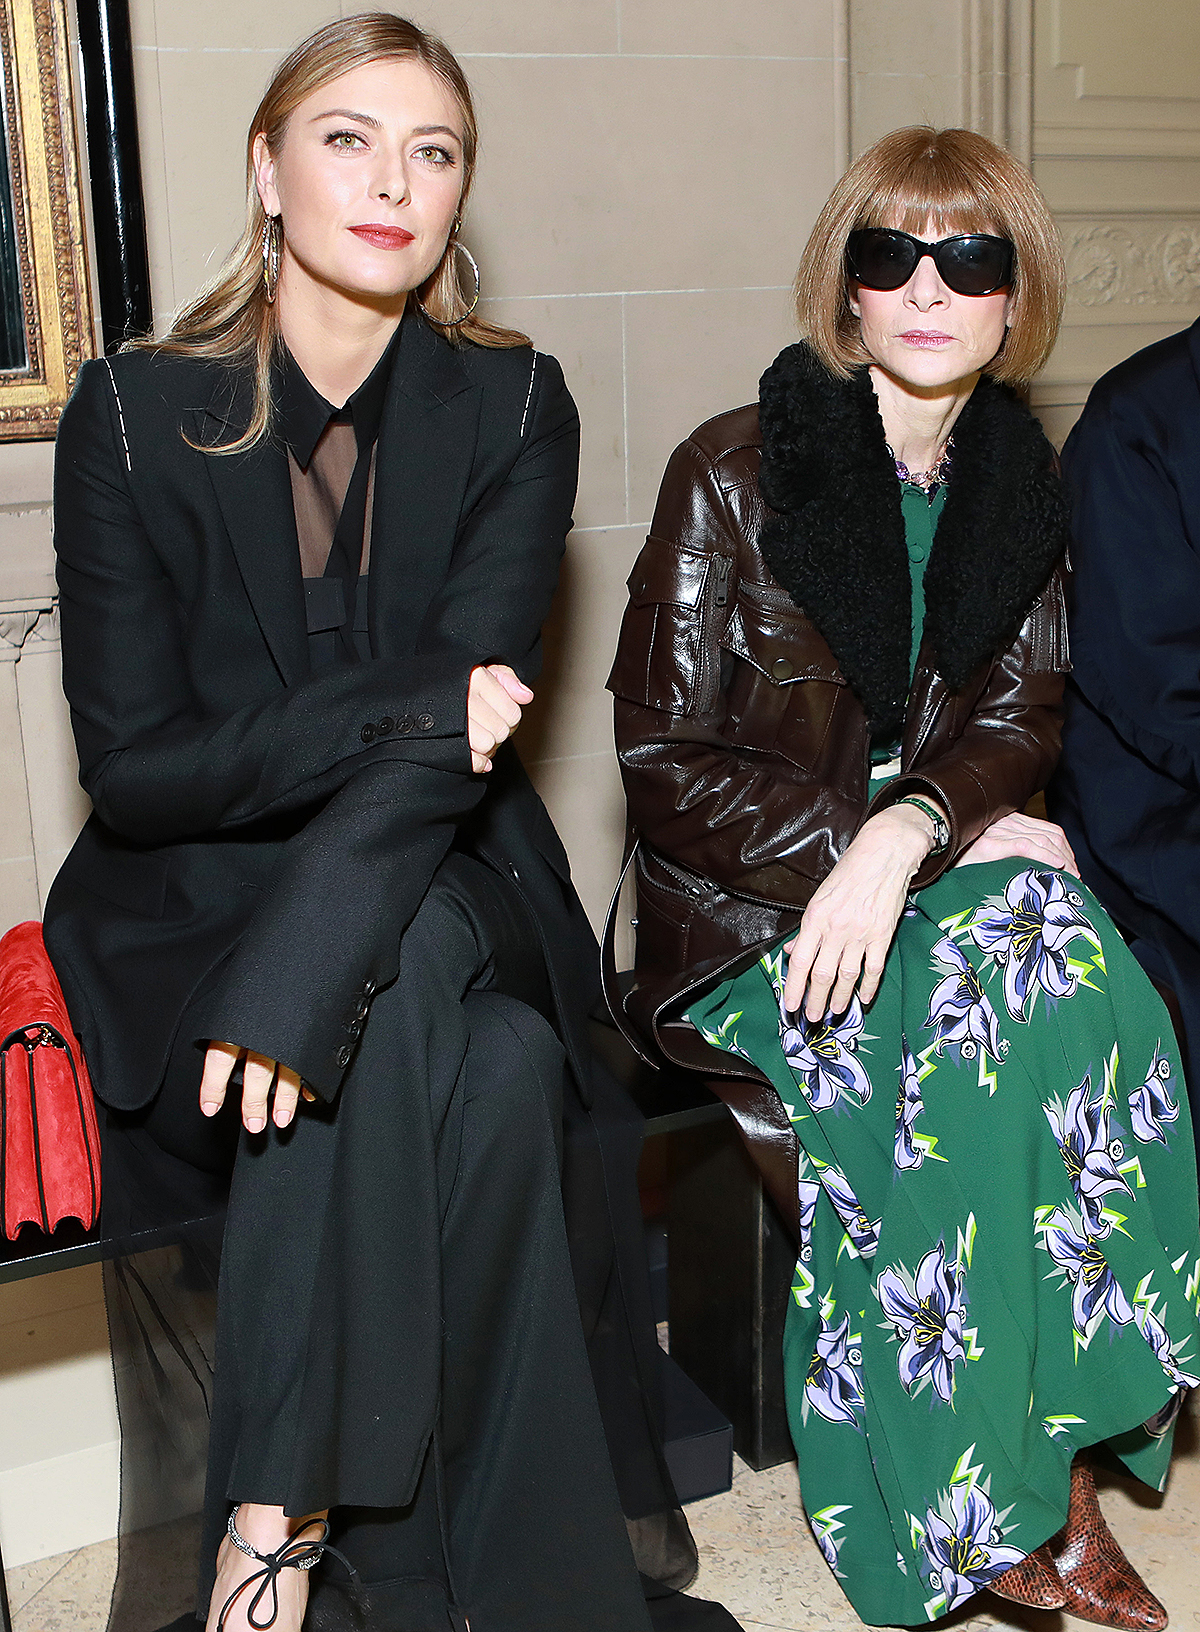 Maria Sharapova, Anna Wintour and Hamish Bowles attend the Vera Wang fashion show during February 2020